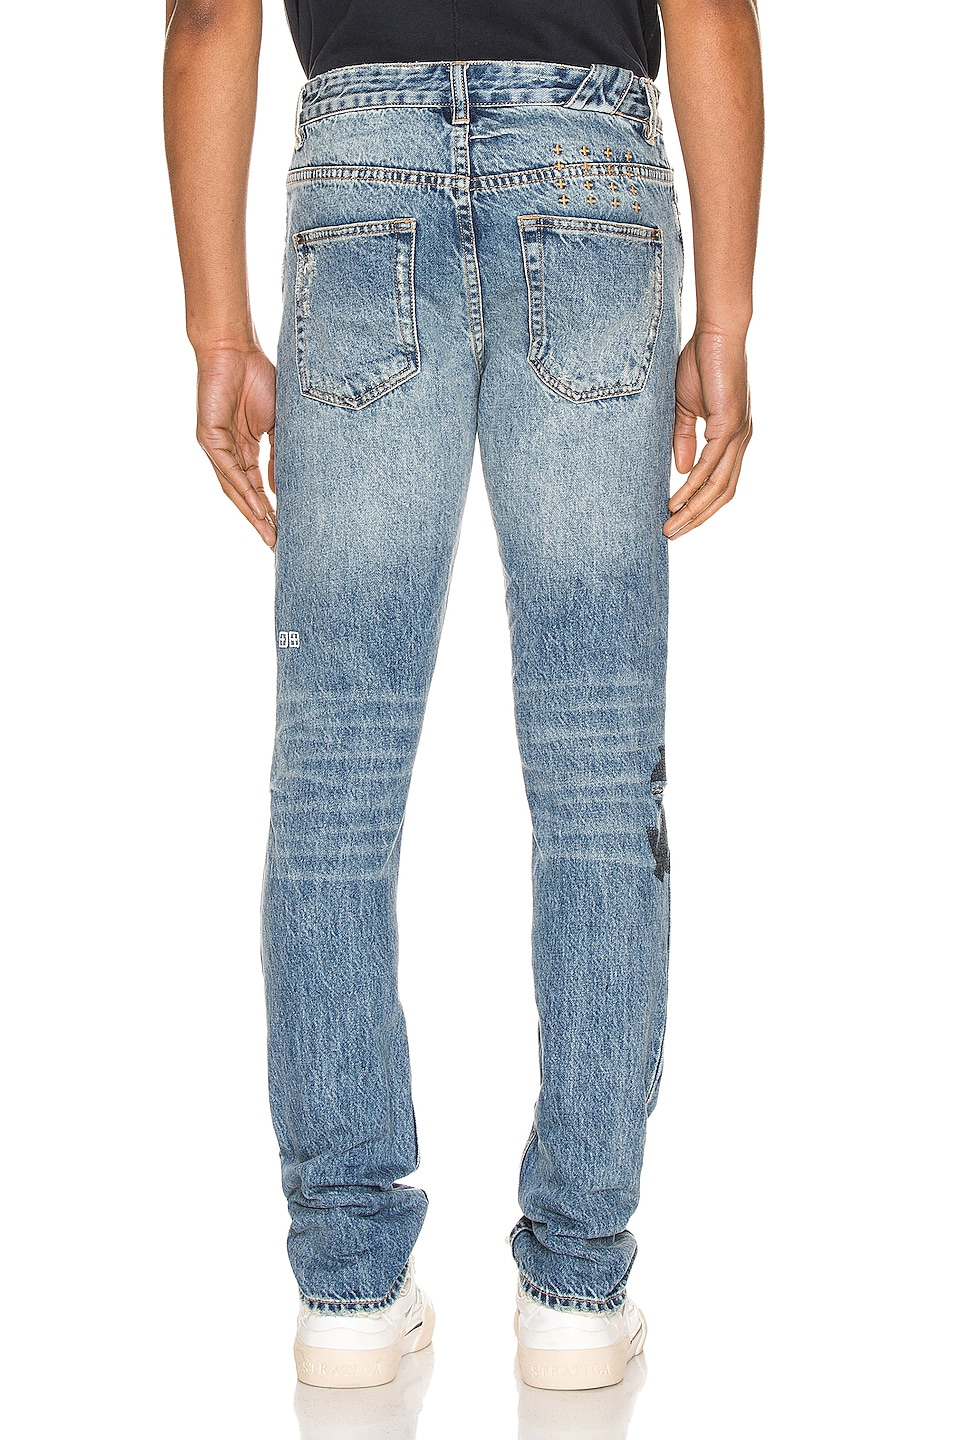 Image 4 of Ksubi Chitch Jinx Pay Up in Denim